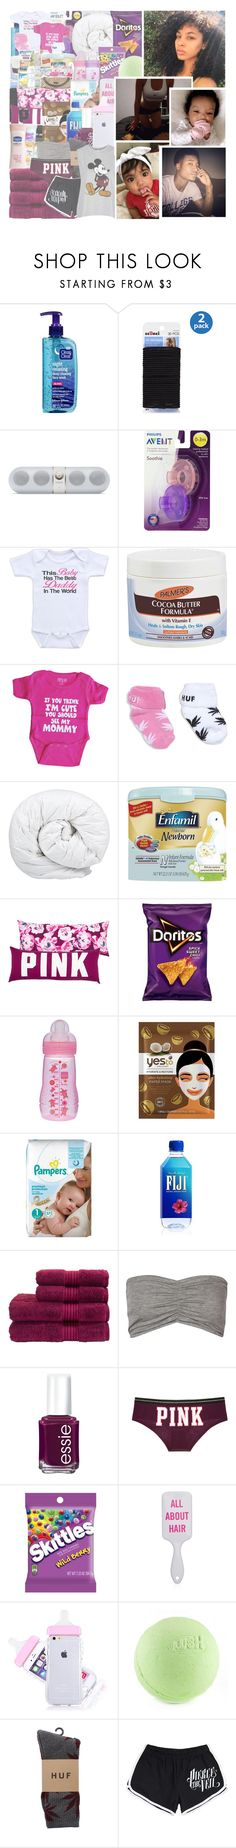 """""""💕😇🔐💍"""" by calif0rnia-nx ❤ liked on Polyvore featuring scunci, Palmer's, Brinkhaus, Yes To, Christy, Boohoo, Essie, Victoria's Secret, HUF and Topshop"""